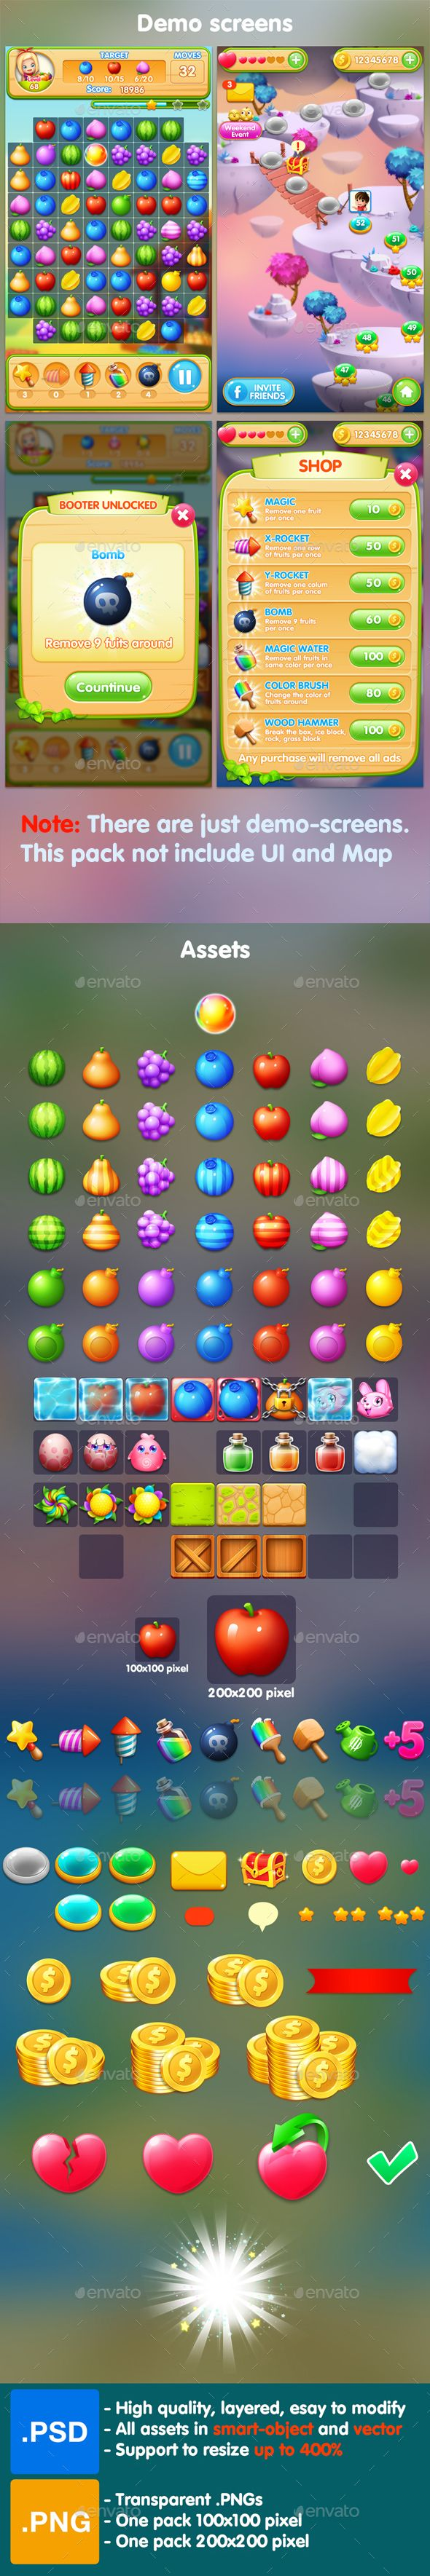 Fruits - Match 3 Game Assets - Game Kits Game Assets   Download: https://graphicriver.net/item/fruits-match-3-game-assets/19166220?ref=sinzo